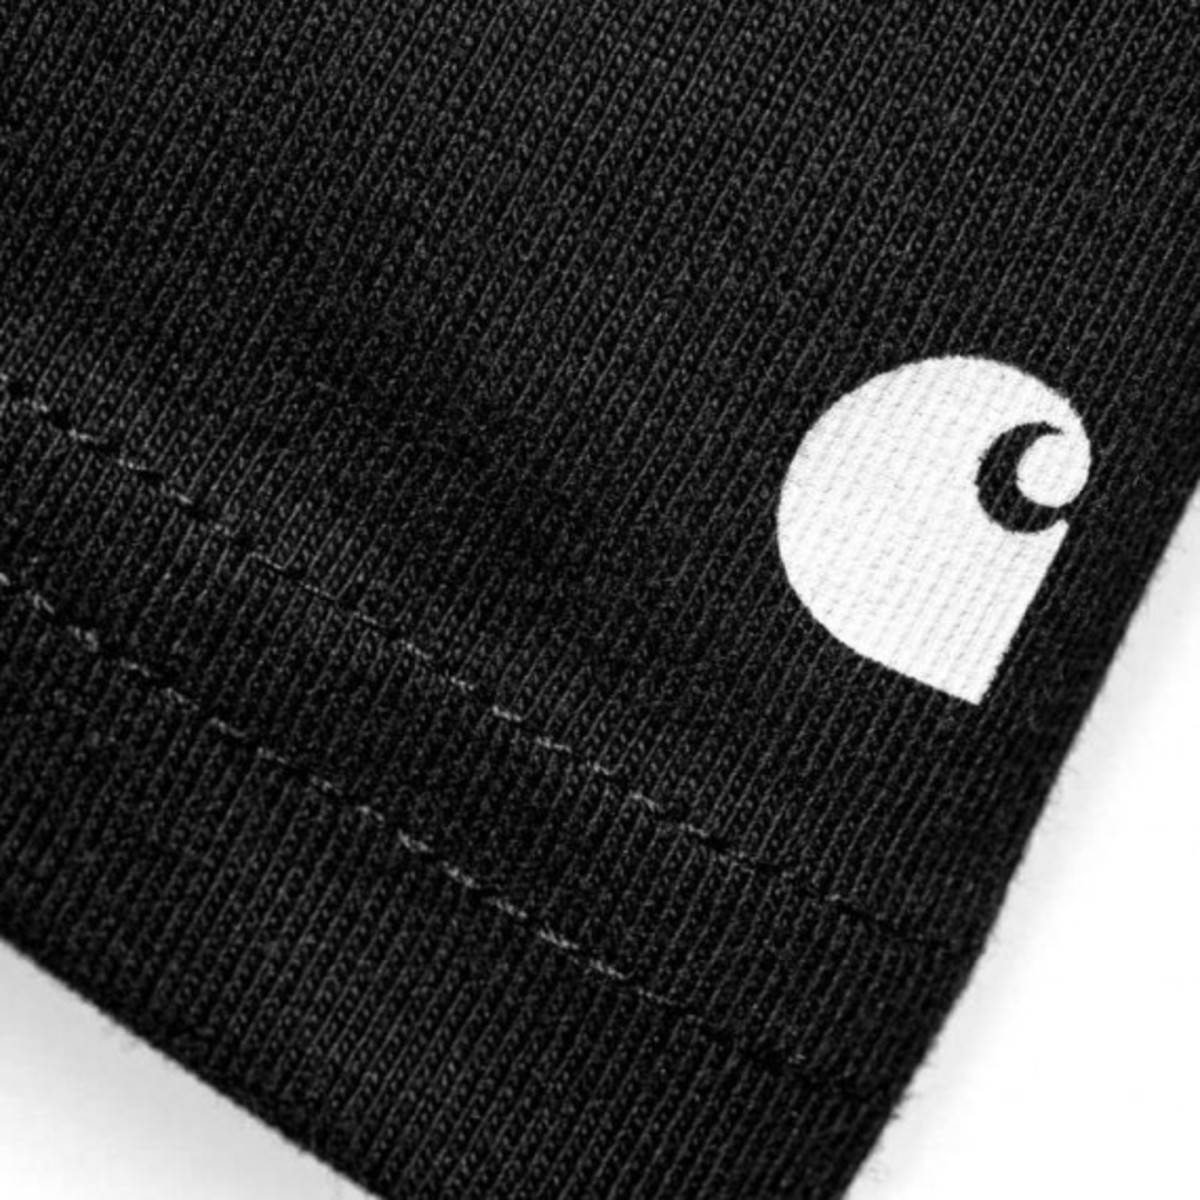 carhartt-wip-fragment-design-nyc-13